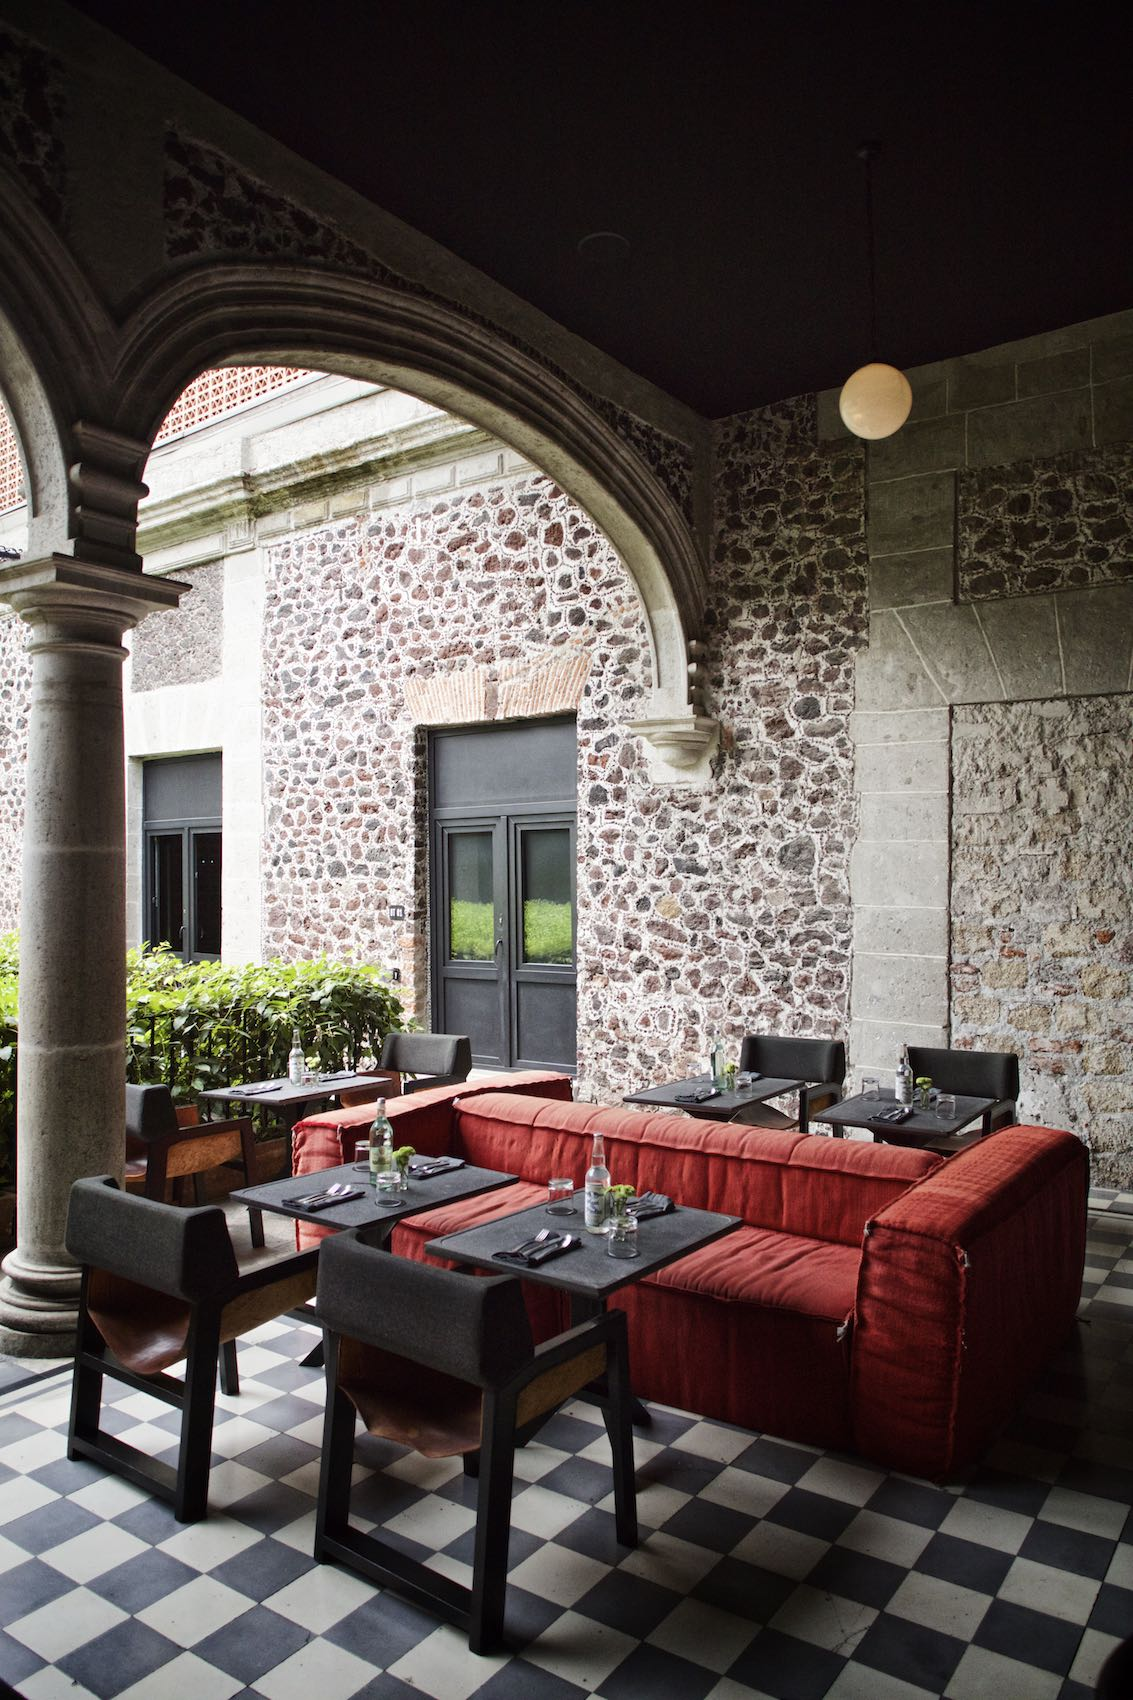 Outdoor restaurant with stone walls in Mexico City